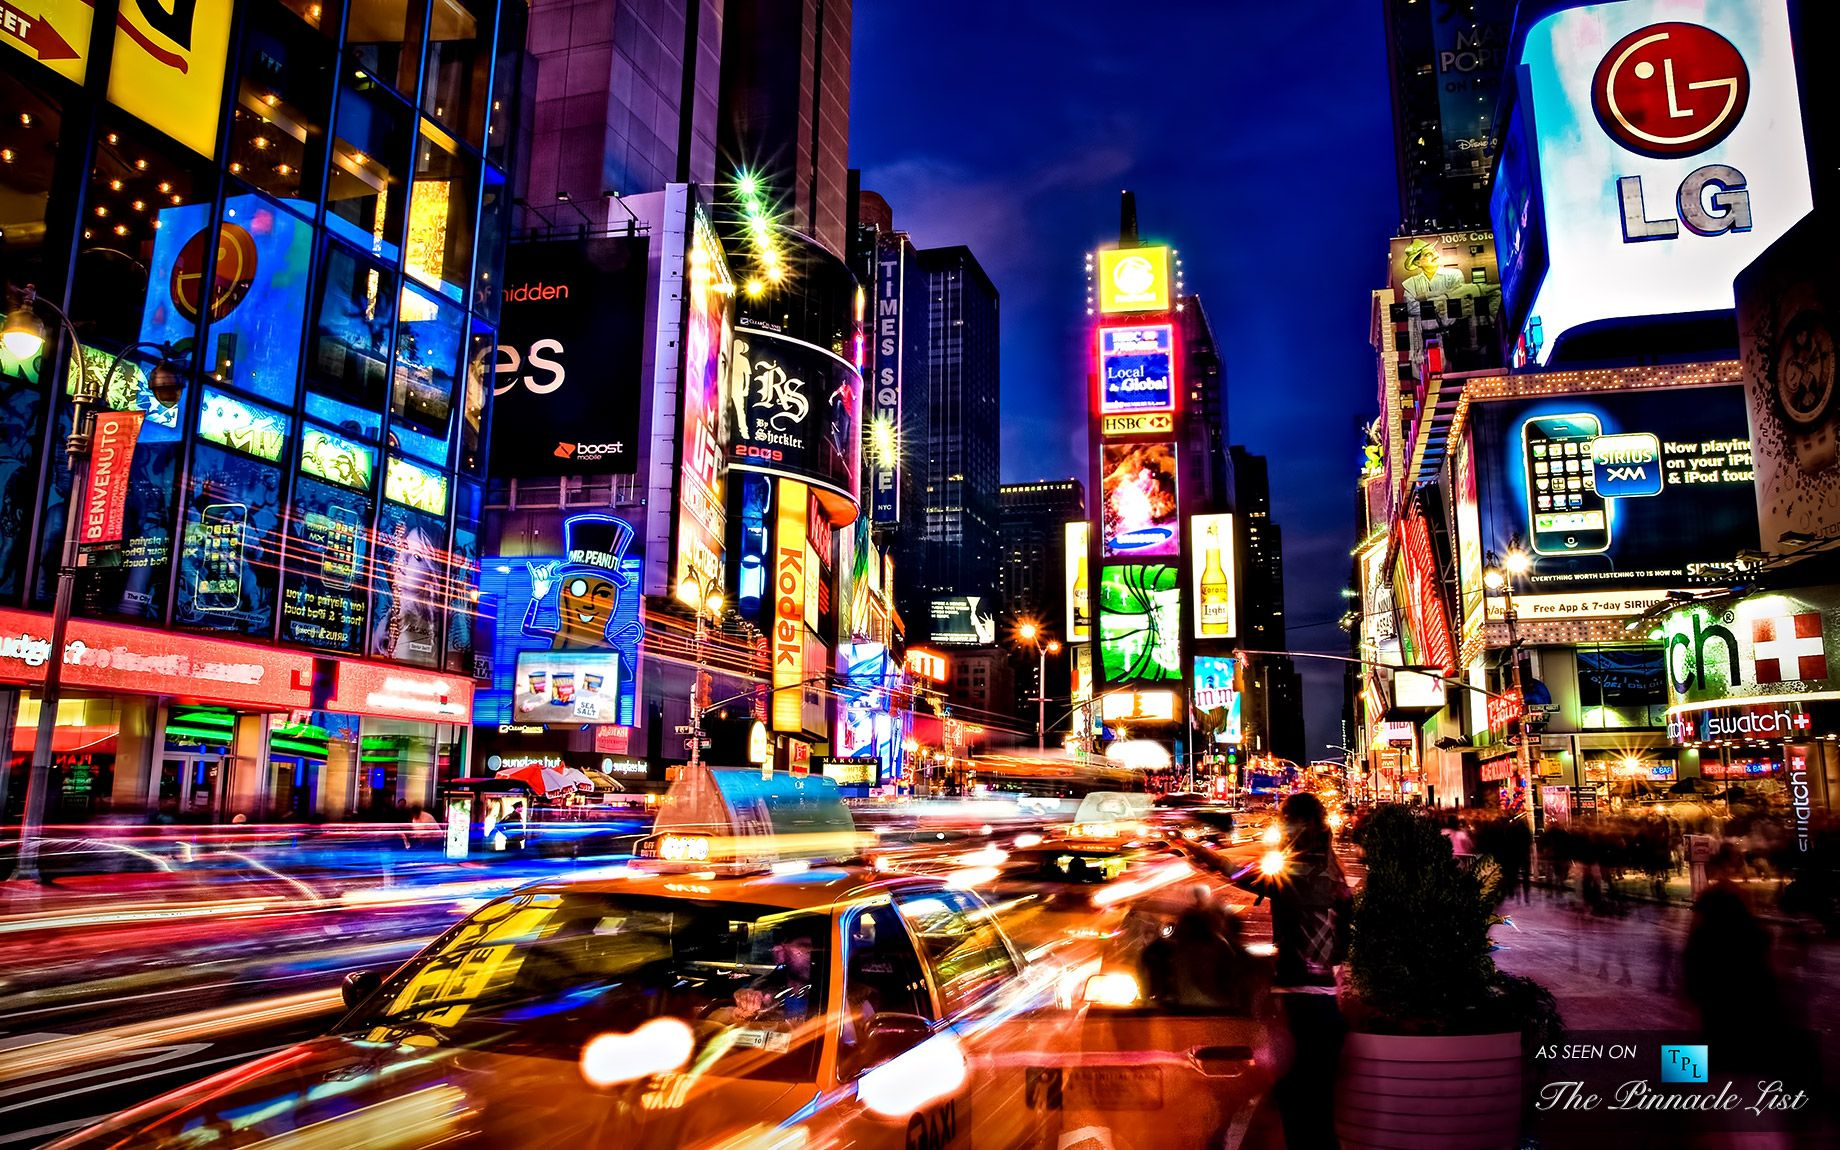 sensory-overload-in-times-square-new-York-the-neon-heart-of-manhattan-920x575-1840-the-pinnacle-list-tpl.jpg (1840×1150)